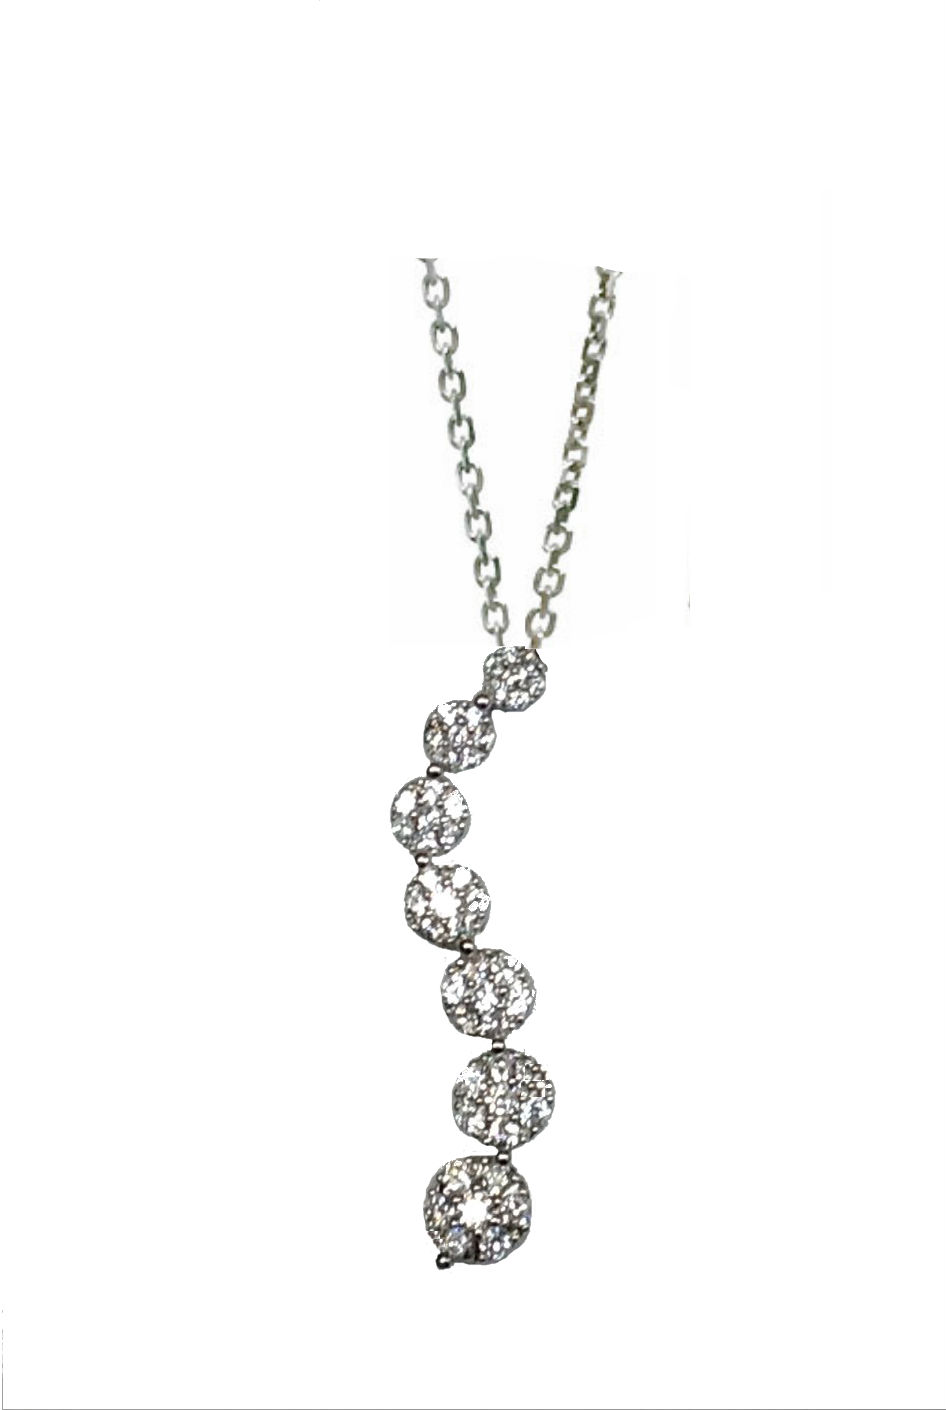 Flower cluster cz journey pendant necklace in sterling silver cluster cz journey pendant necklace in sterling silver adjustable 16 18 aloadofball Image collections